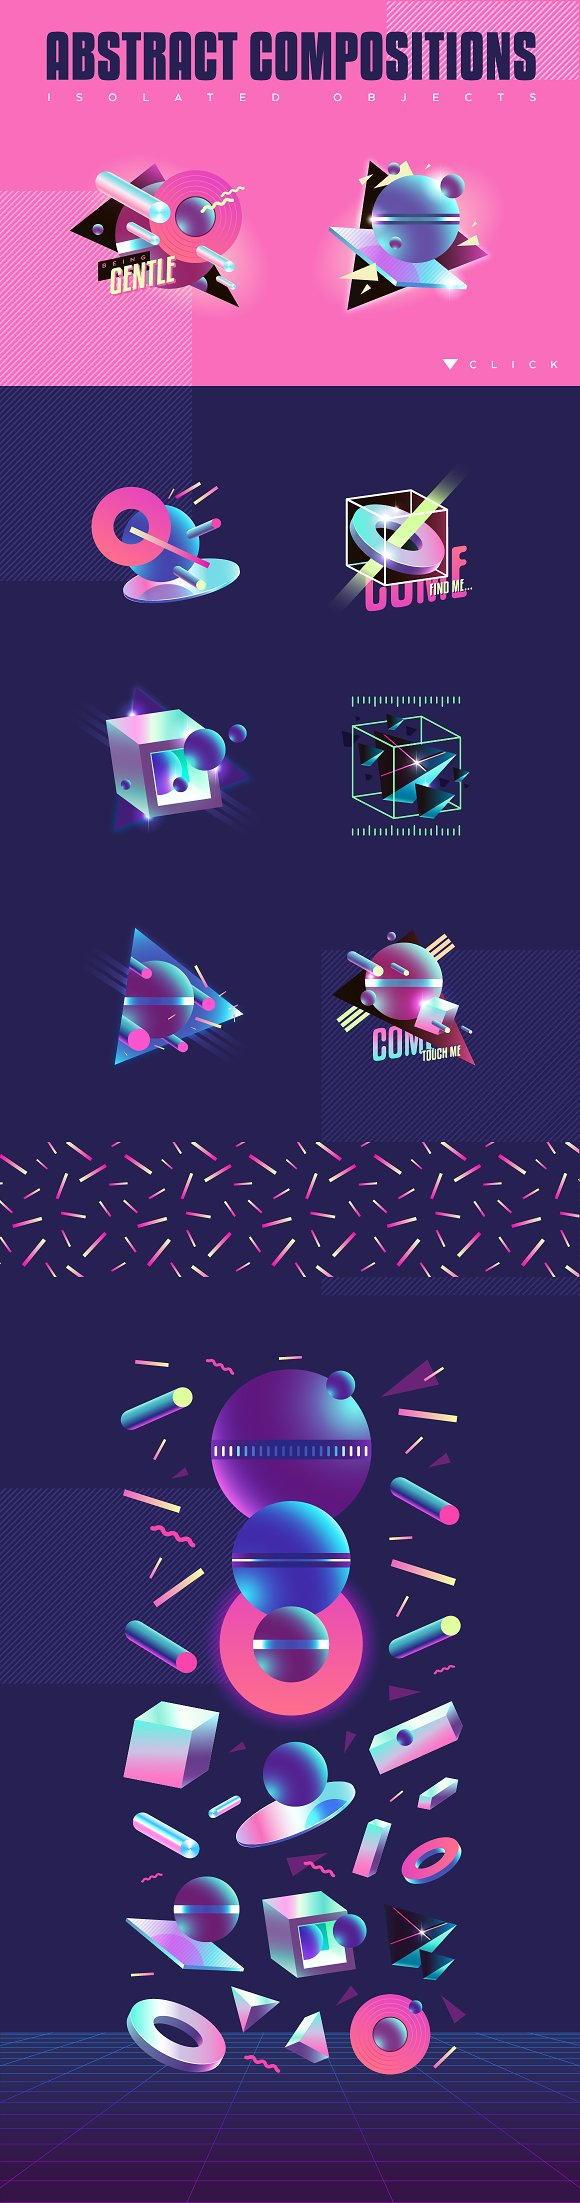 Totally Rad Bundle in Graphics - product preview 19